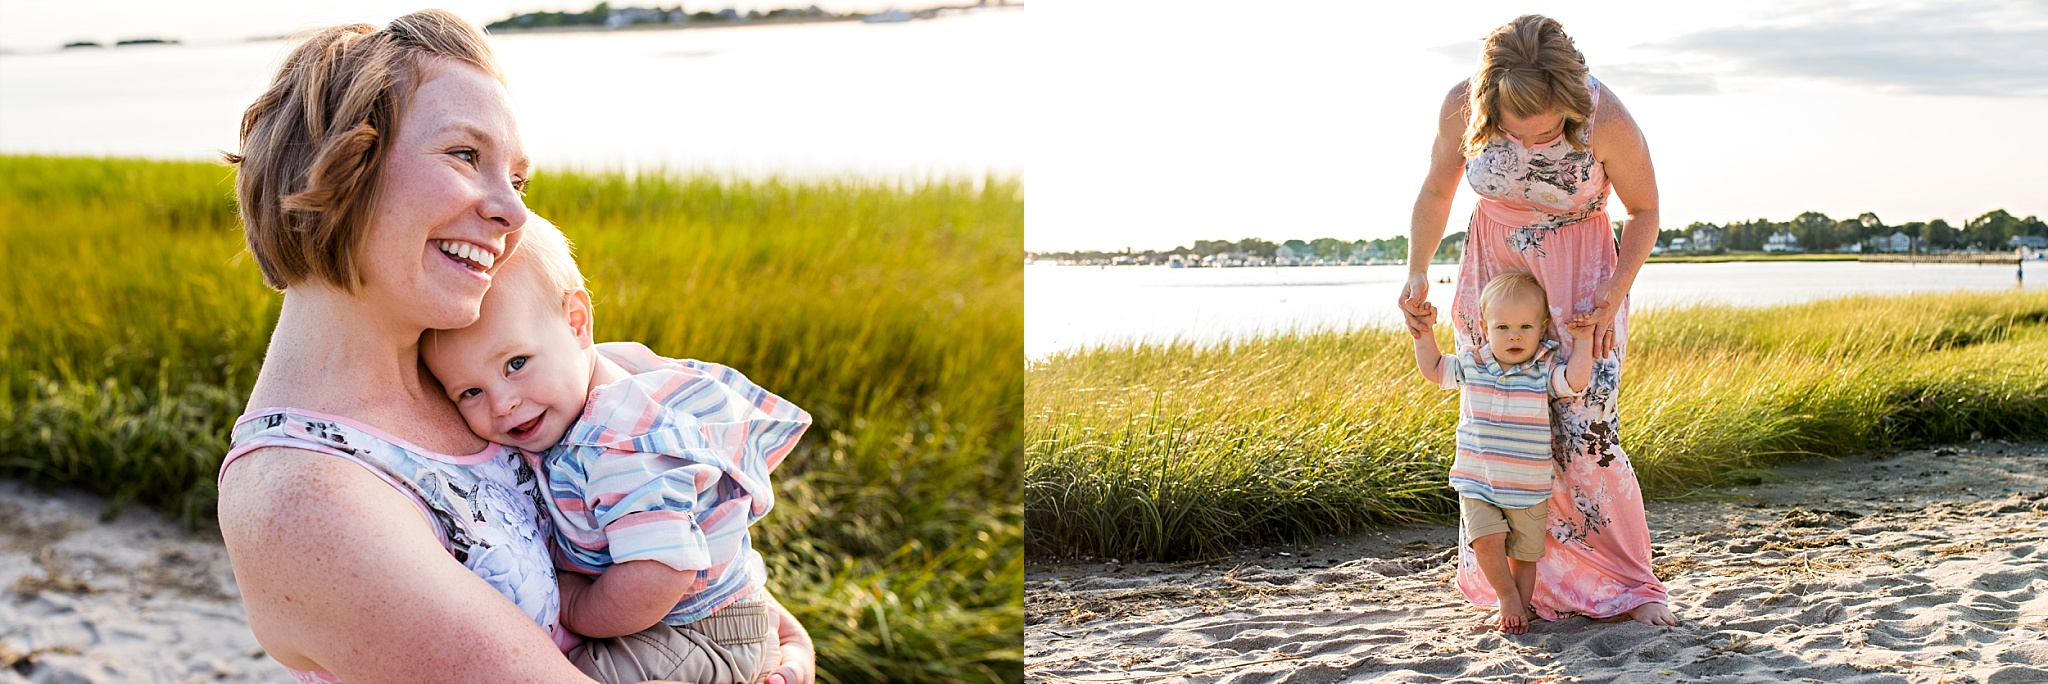 lifestyle baby photography ct